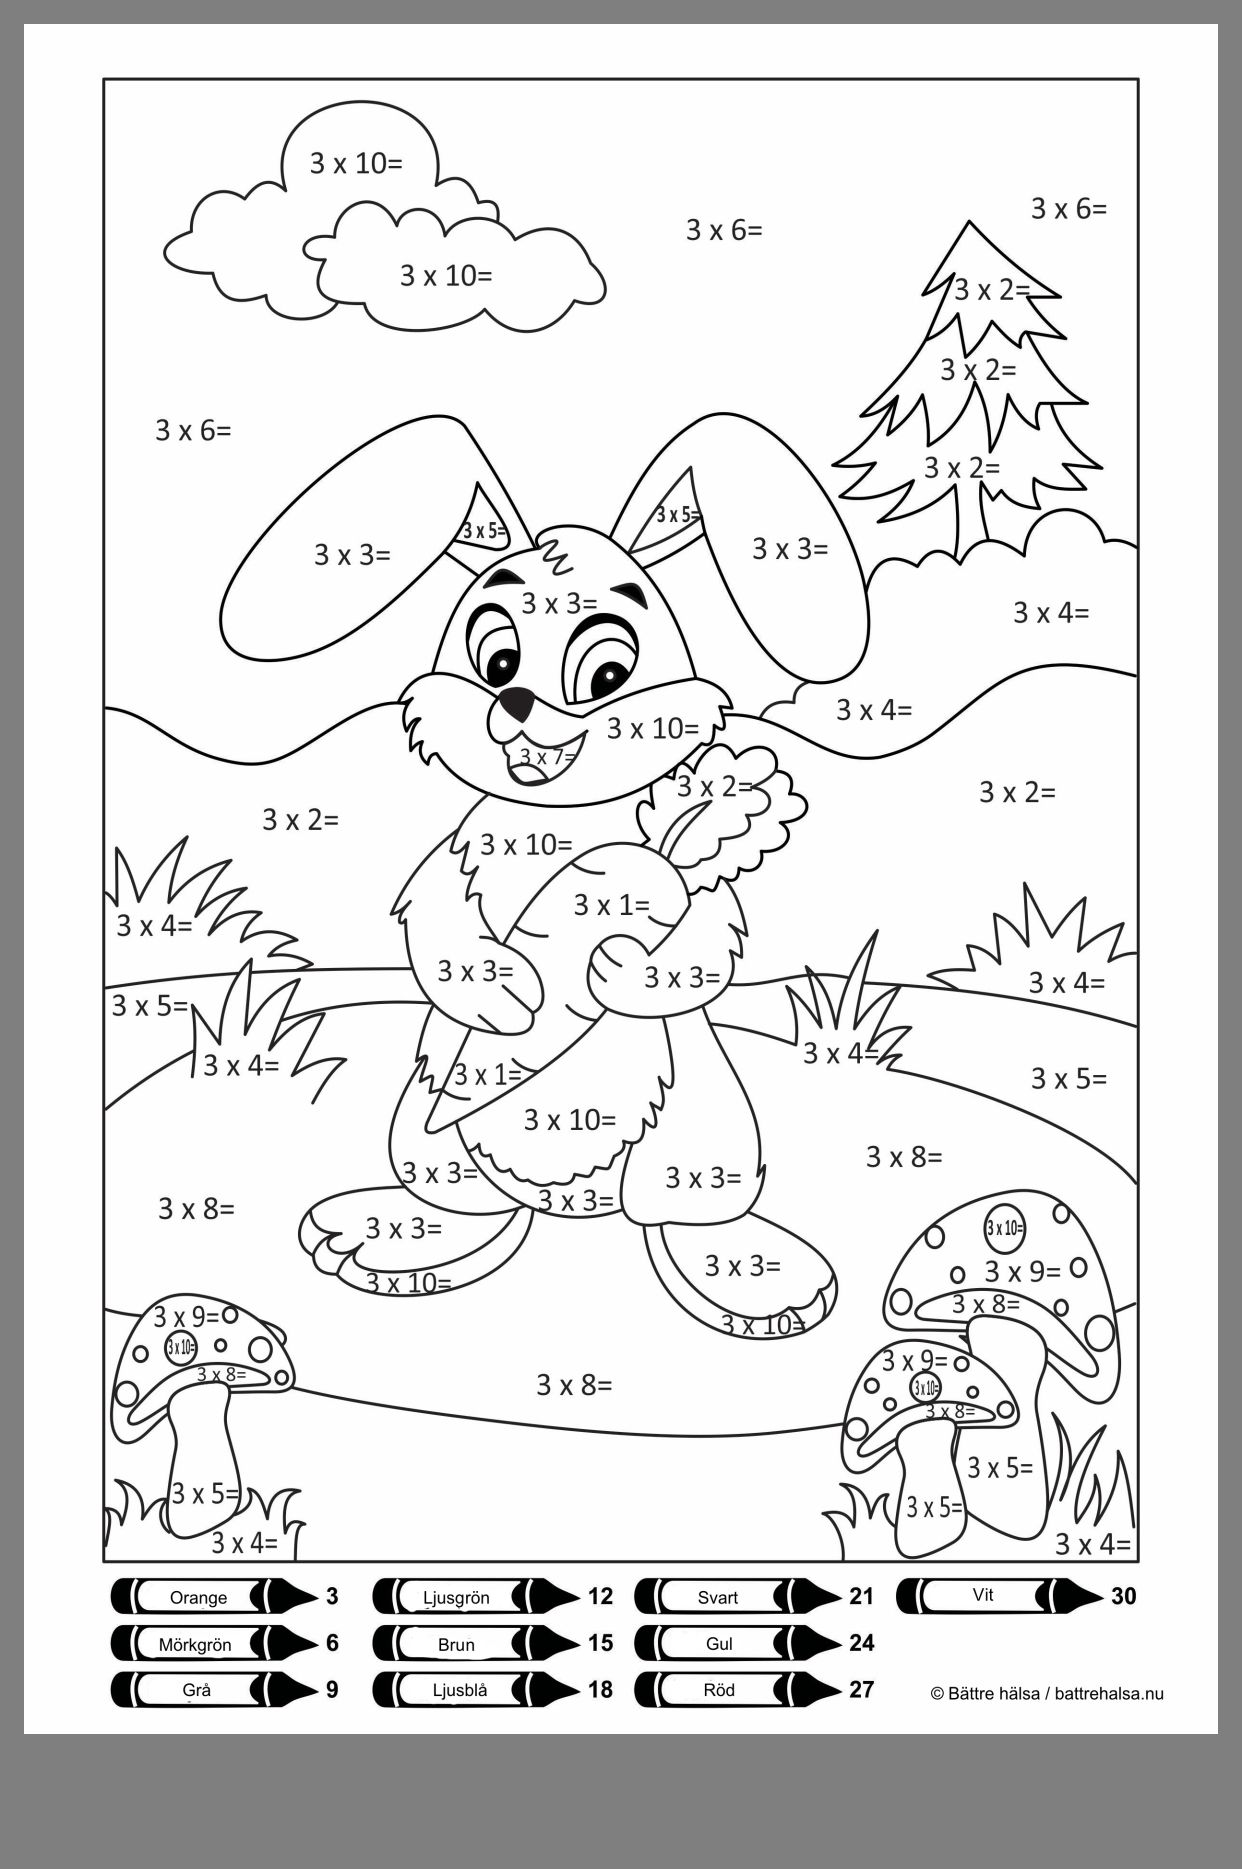 Pin By Nichole Nichols On Homeschool Papers Math Coloring Math Coloring Worksheets Math Activities Preschool [ 1869 x 1242 Pixel ]